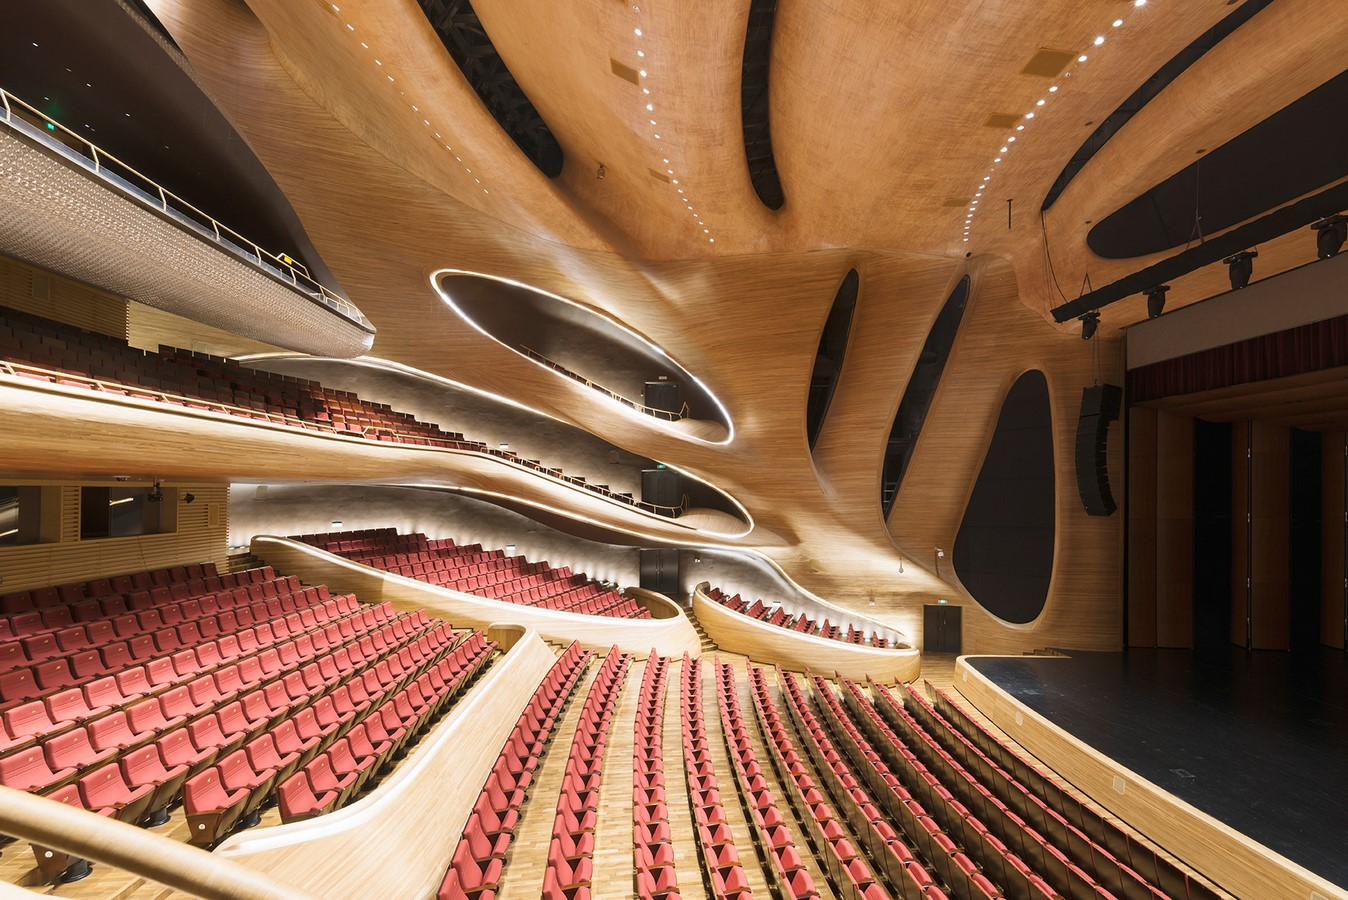 Harbin Opera House by MAD Architects: Design inspired by the surroundings - Sheet11